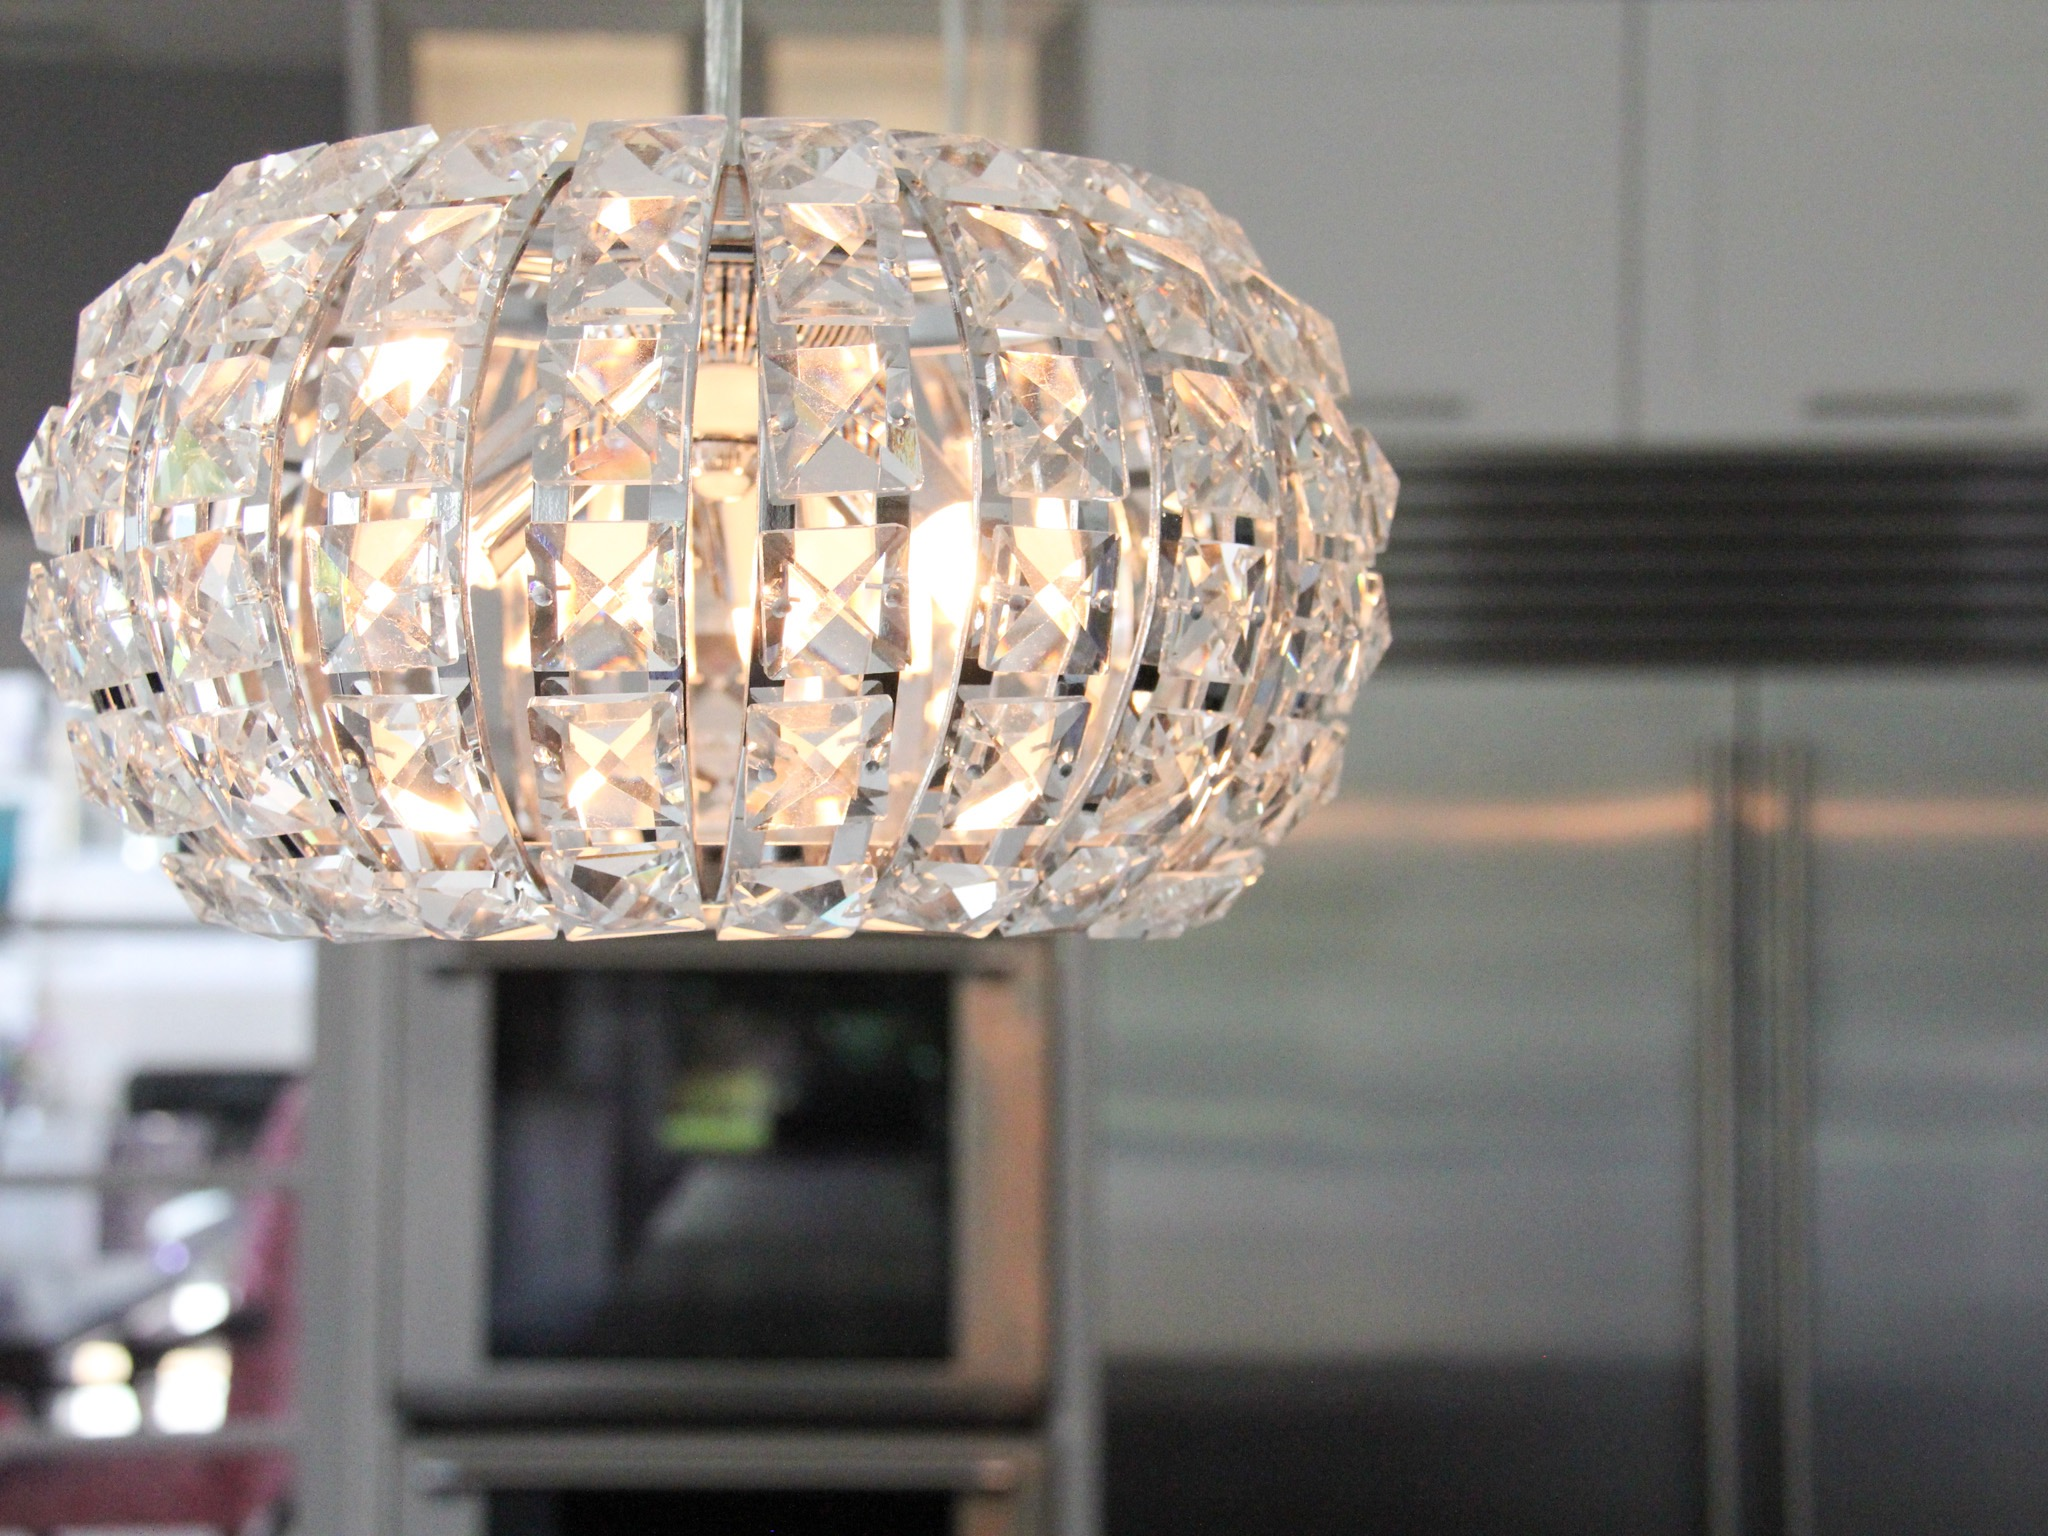 Crystal Pendant Lights Above Contemporary Kitchen Island (View 12 of 39)